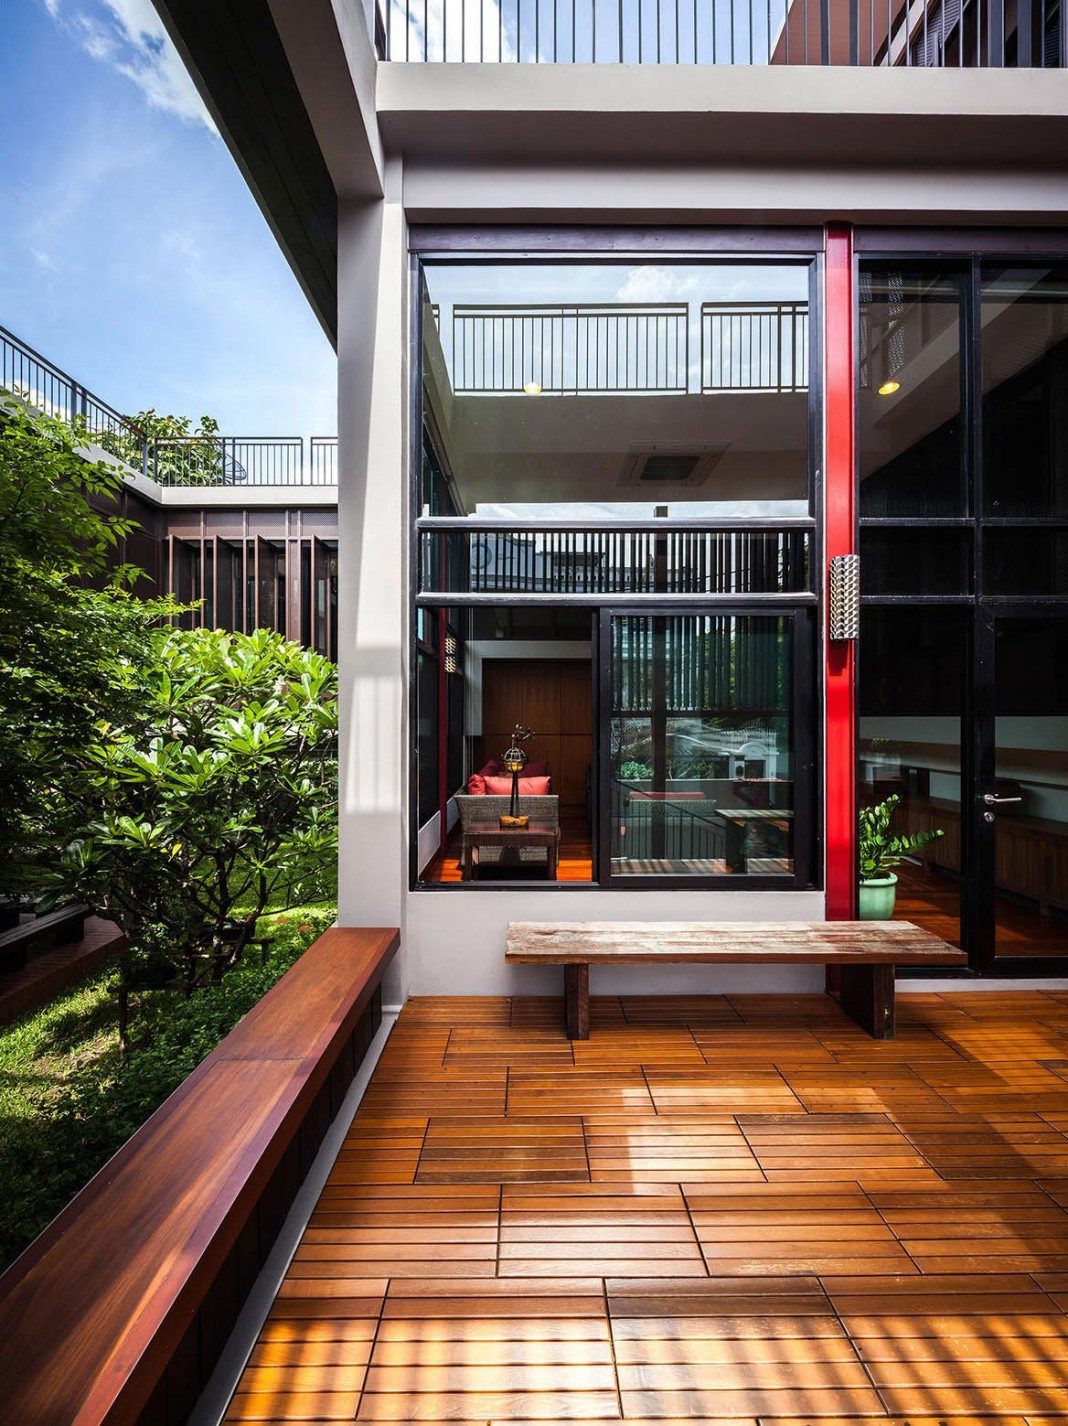 baan sukothai 11 home by paripumi design features 360 degree perspectives over the interior garden - Home Design Degree